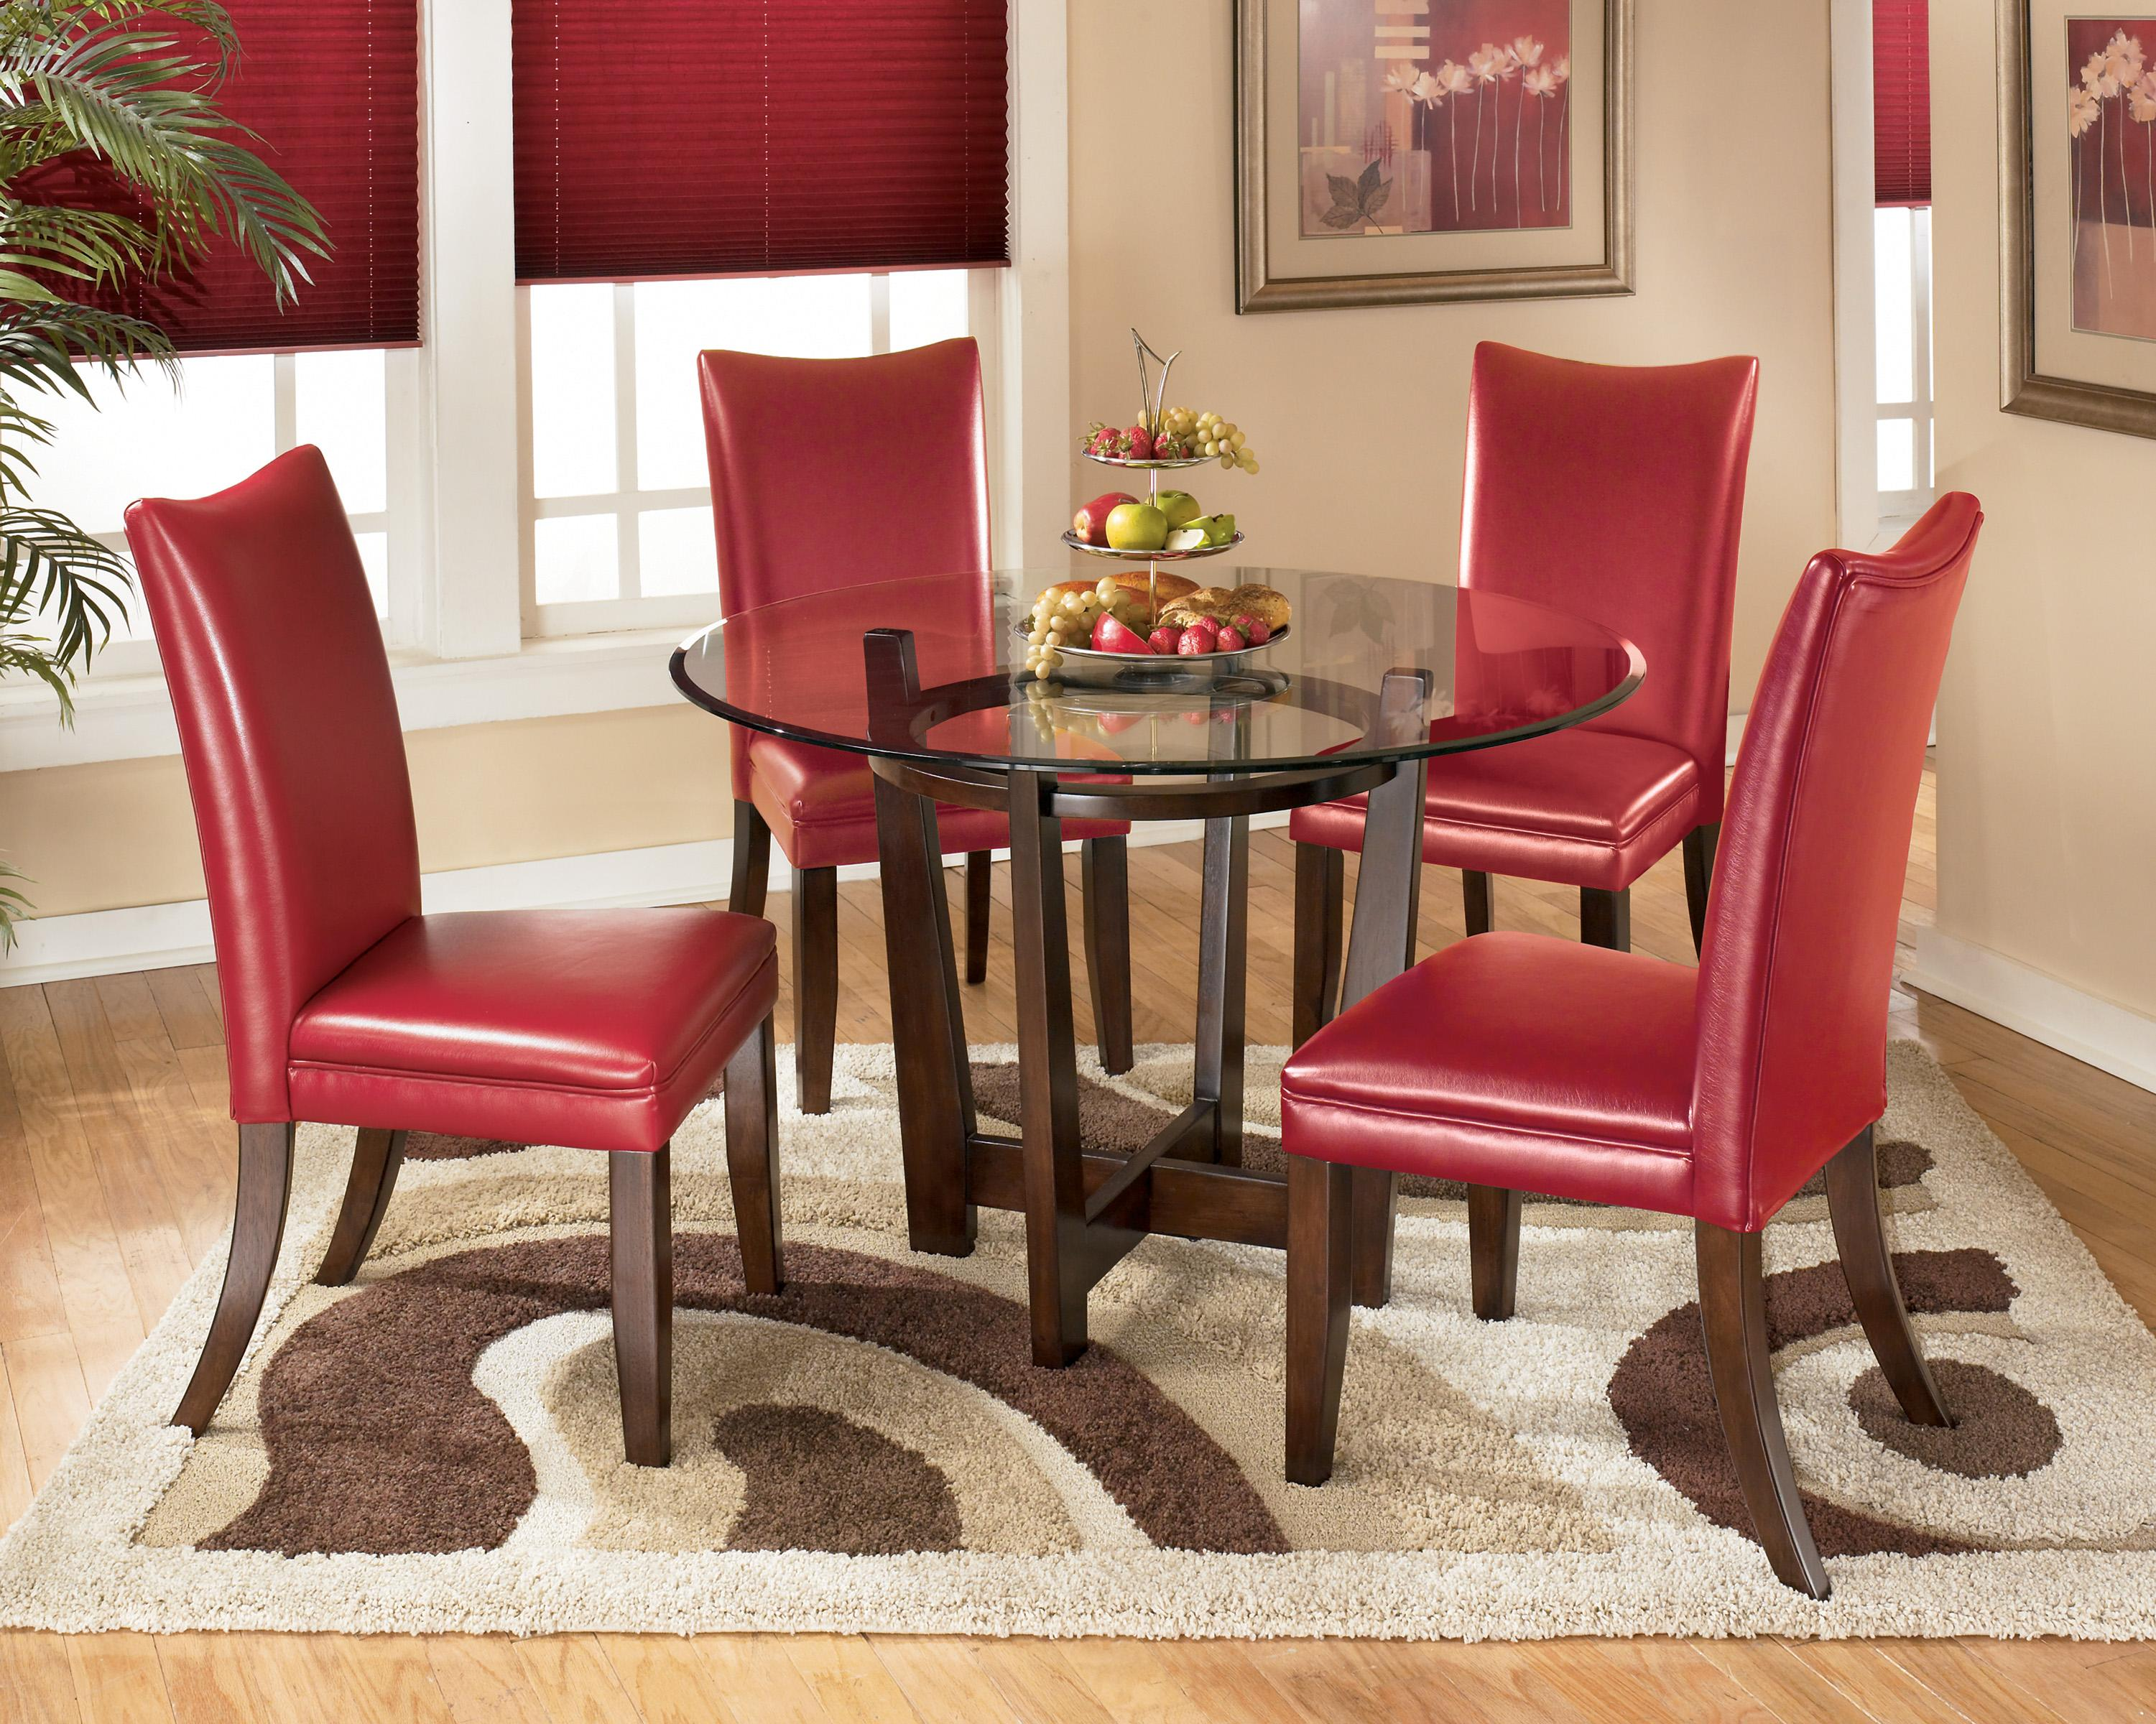 5 Piece Round Dining Table Set with Red Chairs by Signature Design ...